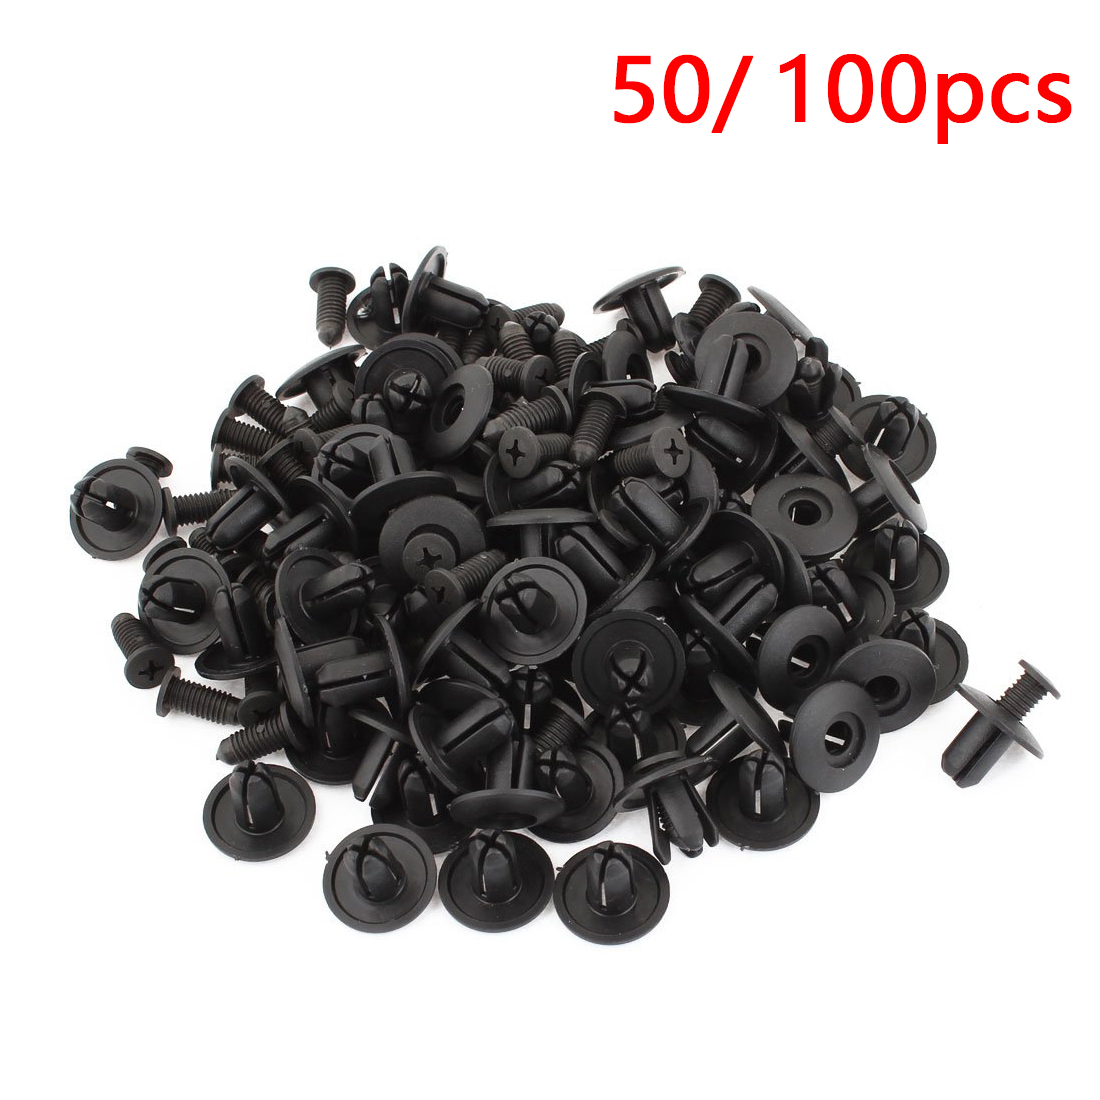 Dewtreetali 6mm 8mm Universal 50pcs/100pcs Plastic Car Rivet Fastener Car-styling Car Door Bumper Cover Fender Bumper Fixed Clip(China)